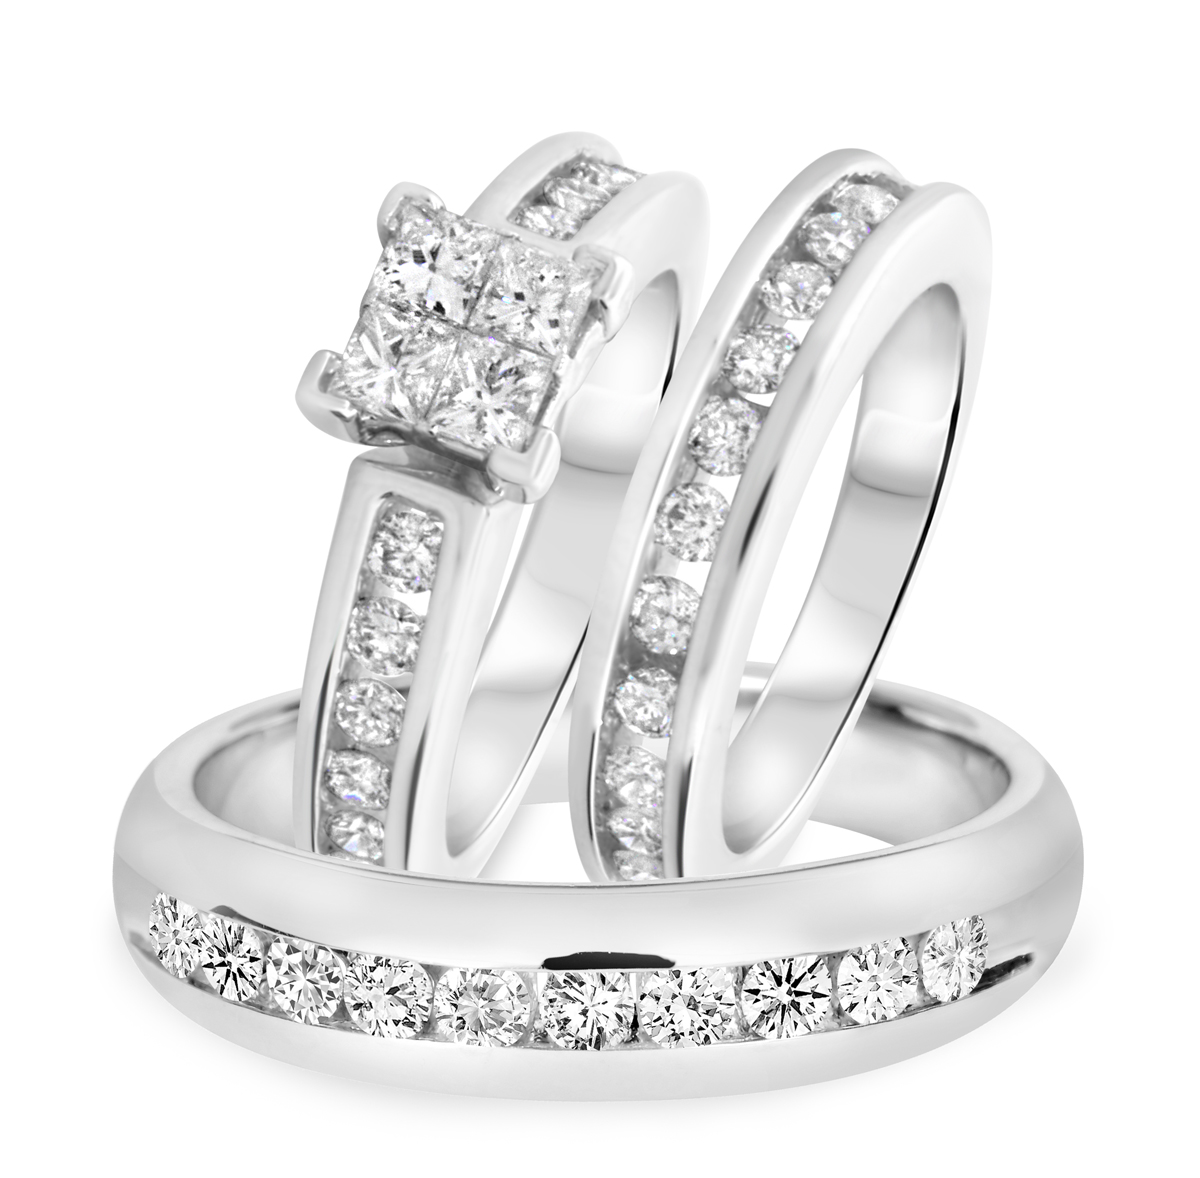 2 Carat T.W. Princess, Round Cut Diamond Trio Wedding Set 10K White Gold